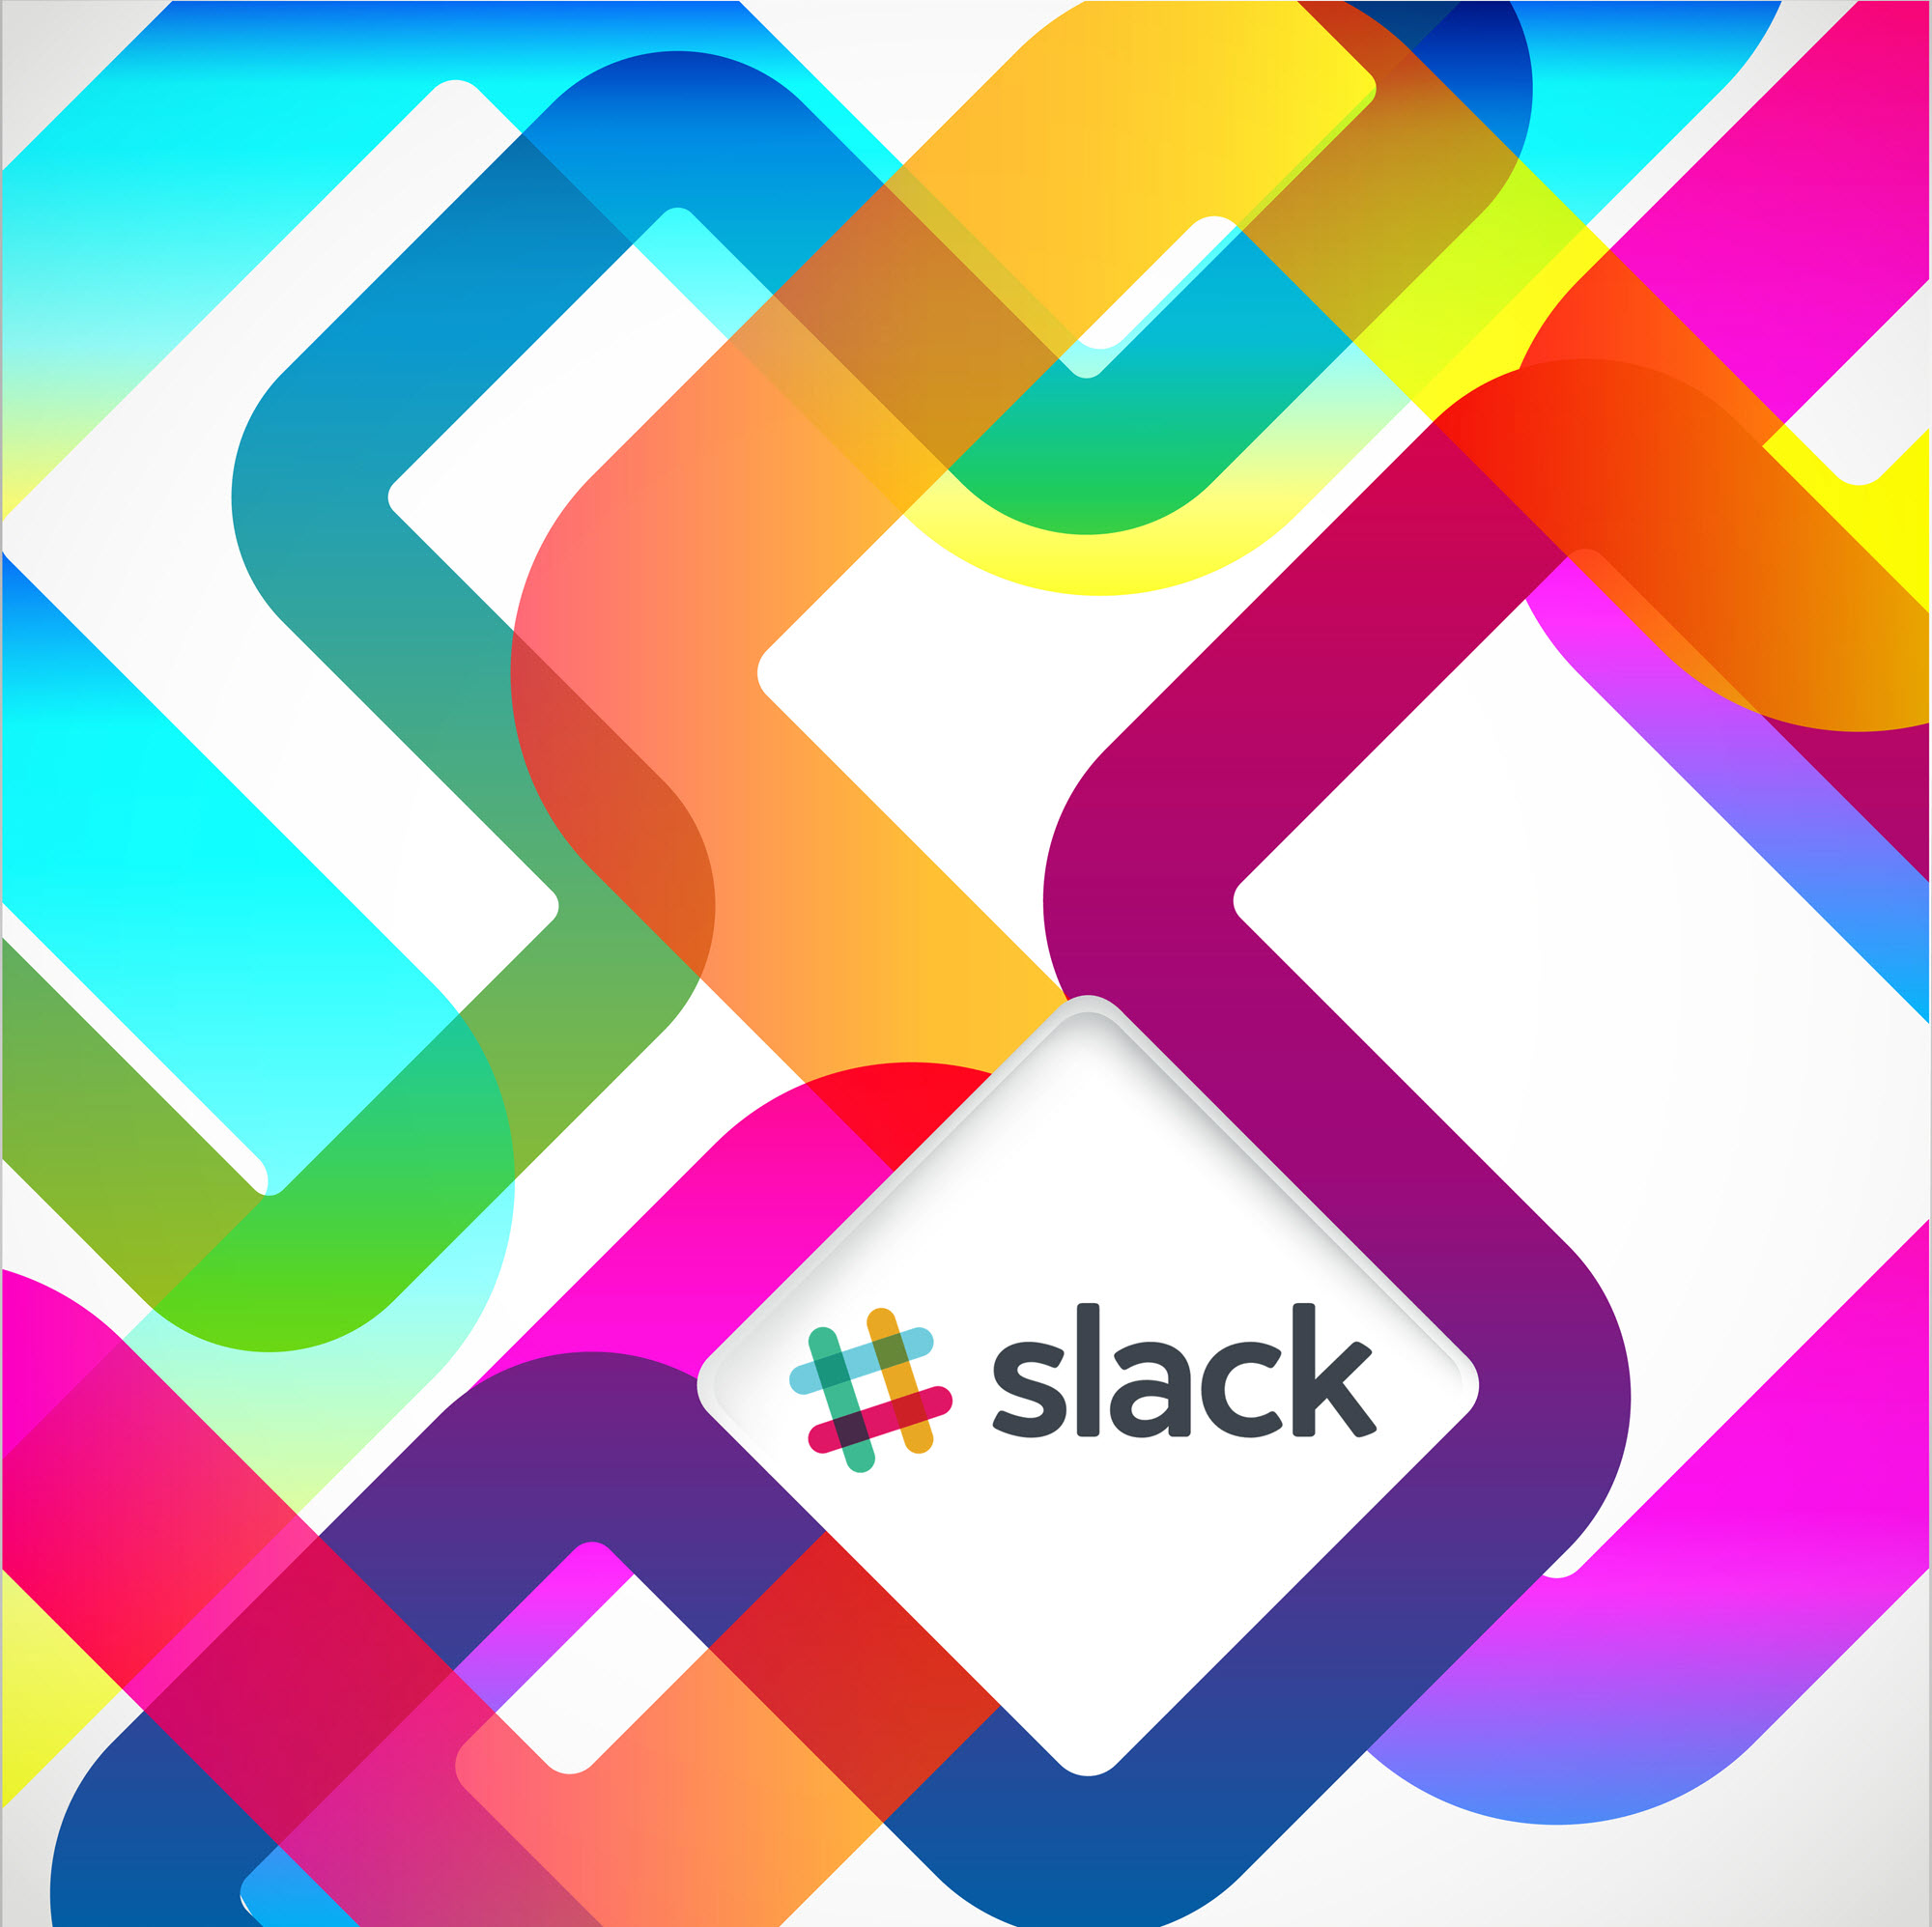 How to use Slack for community building